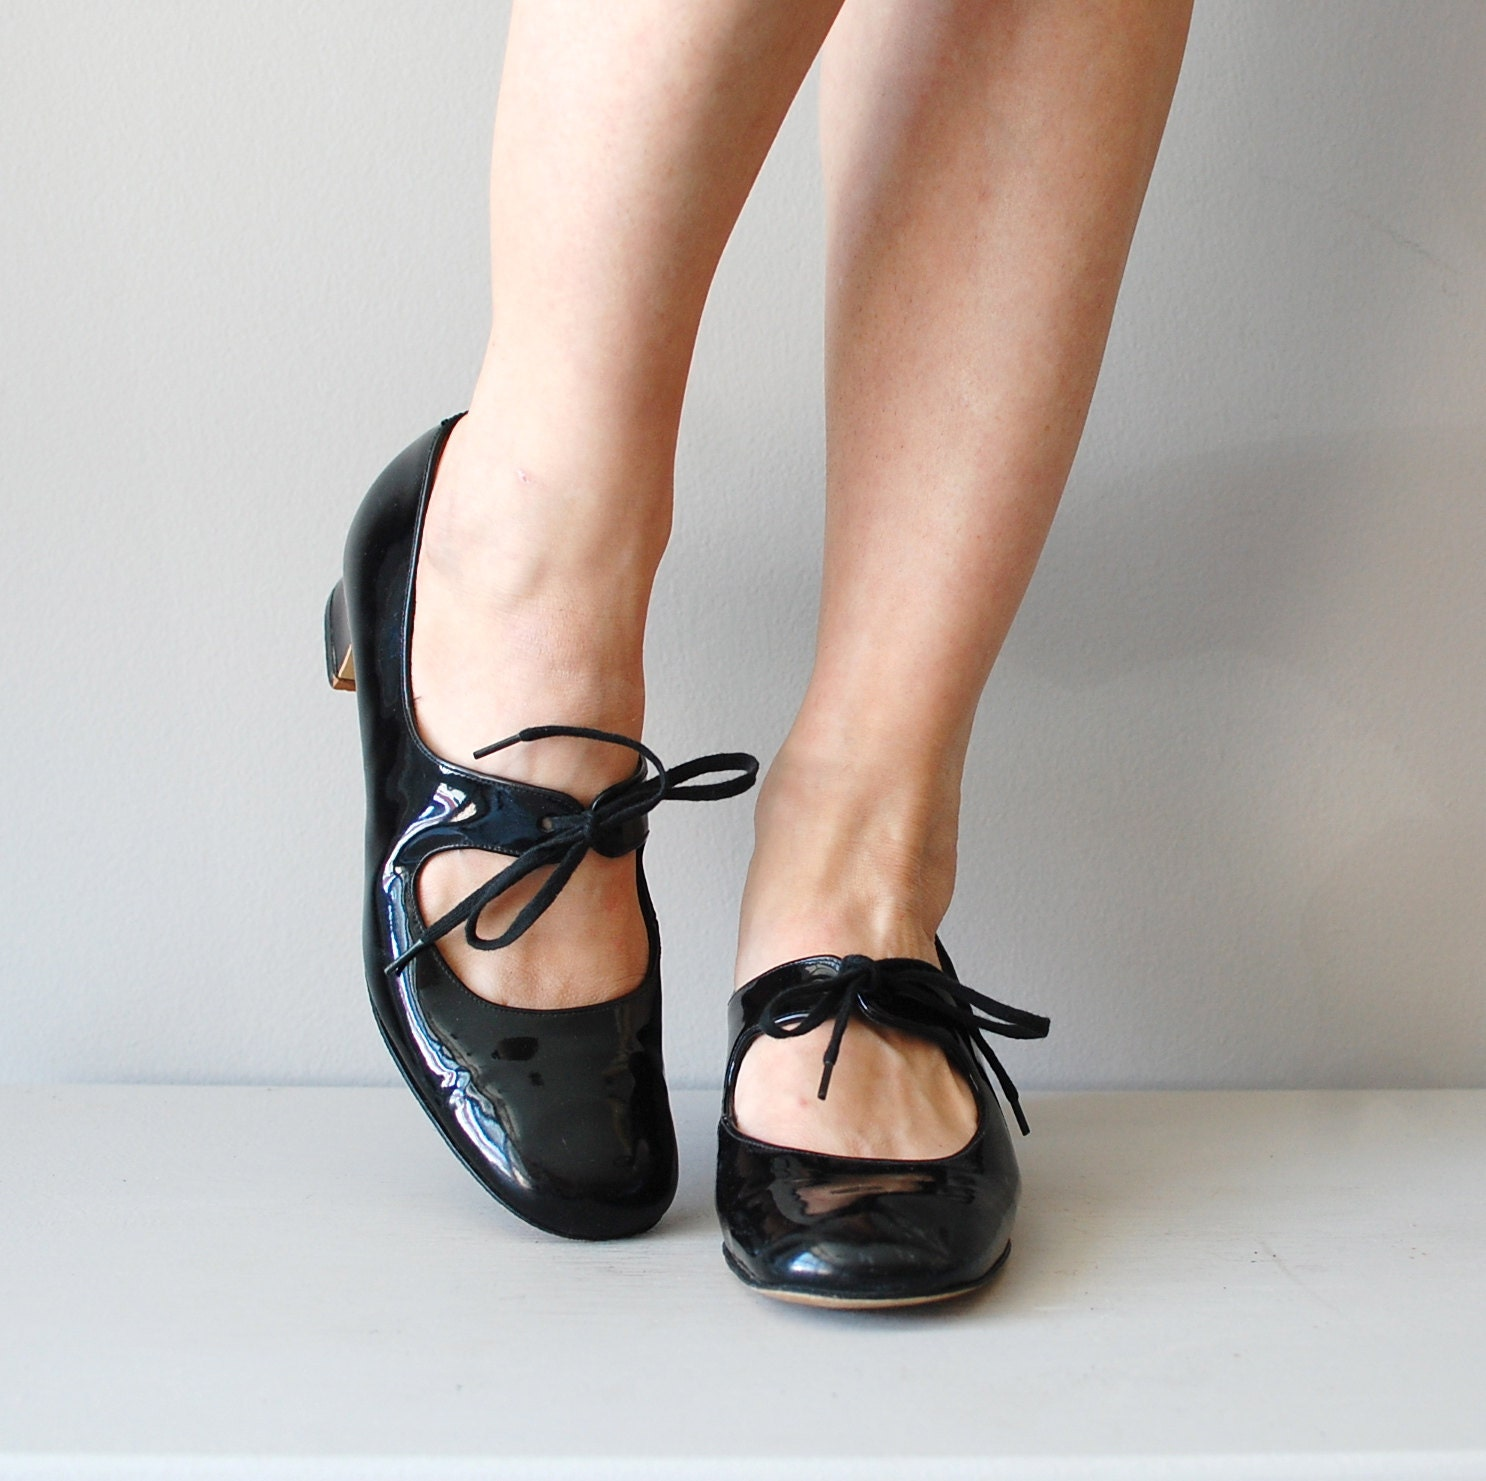 Black Patent Mary Jane Tap Shoes